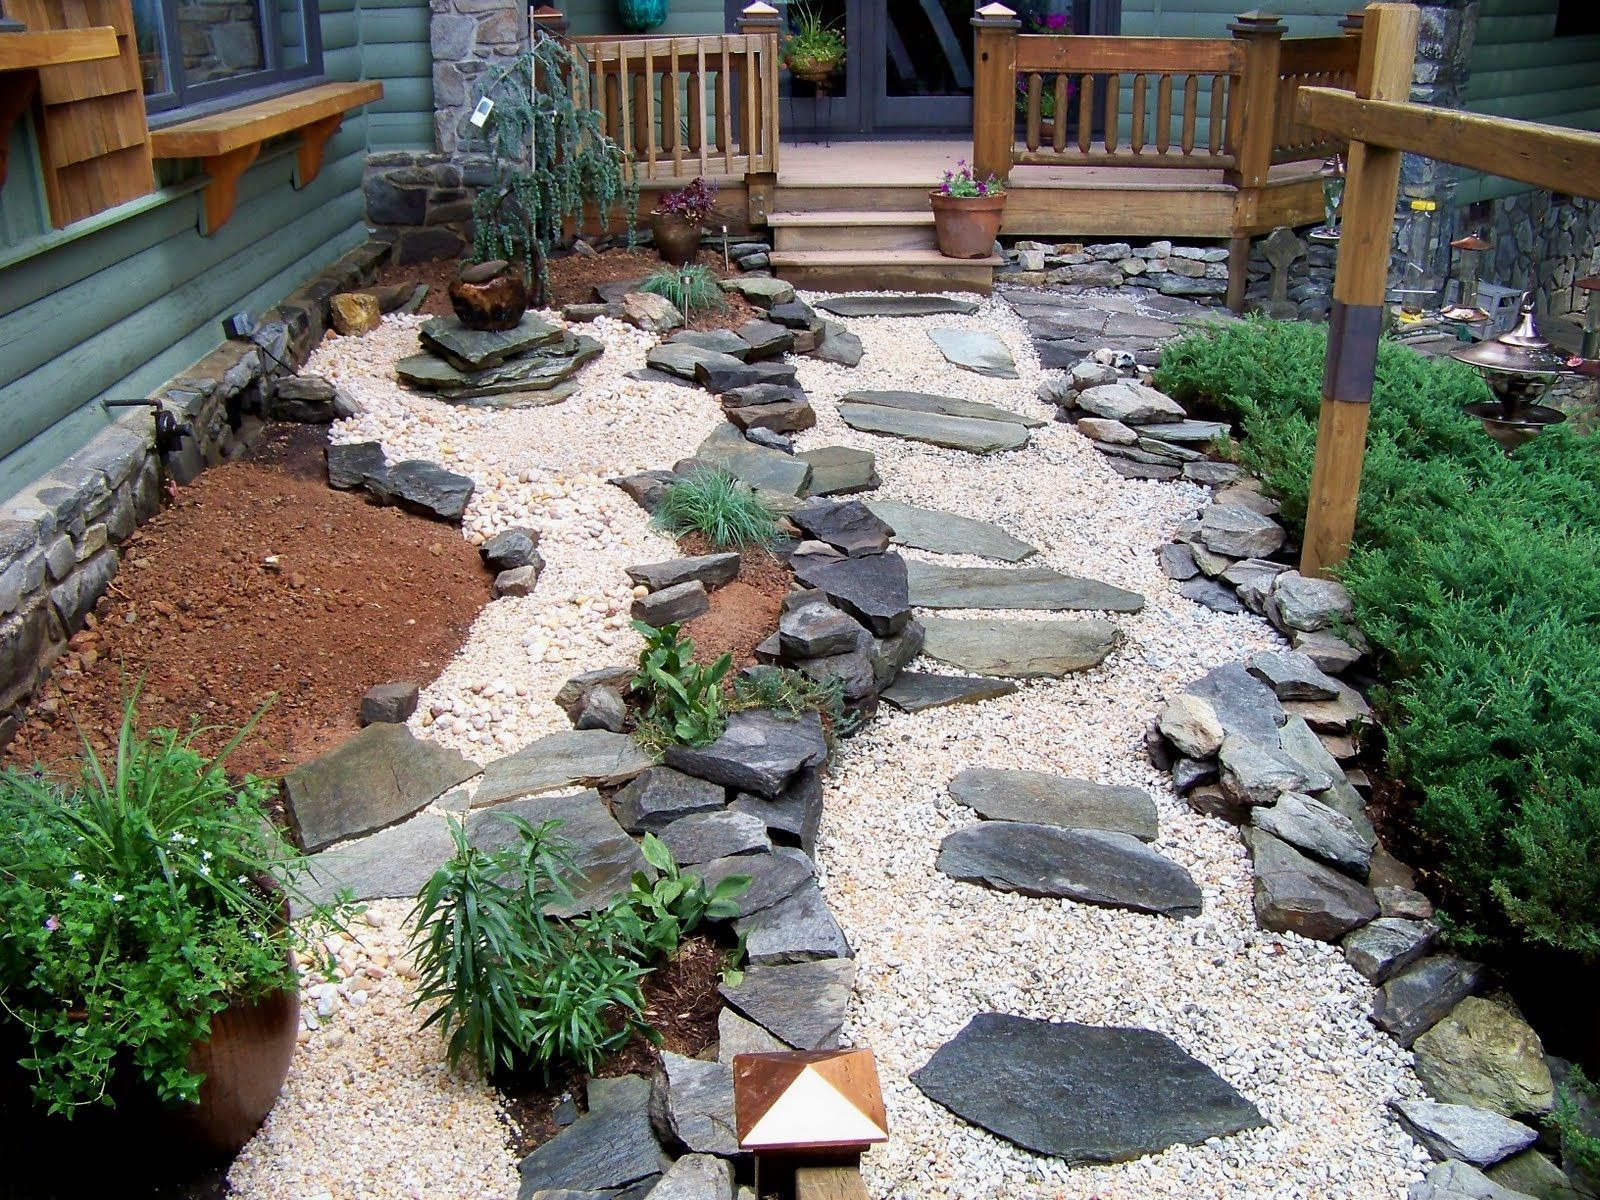 Japanese Garden Designs beautiful japanese garden designs for small gardens with small pool Garden Design With Rock Garden Ideas Using Nature Exterior Accent Designing City With Front Yard Landscapes